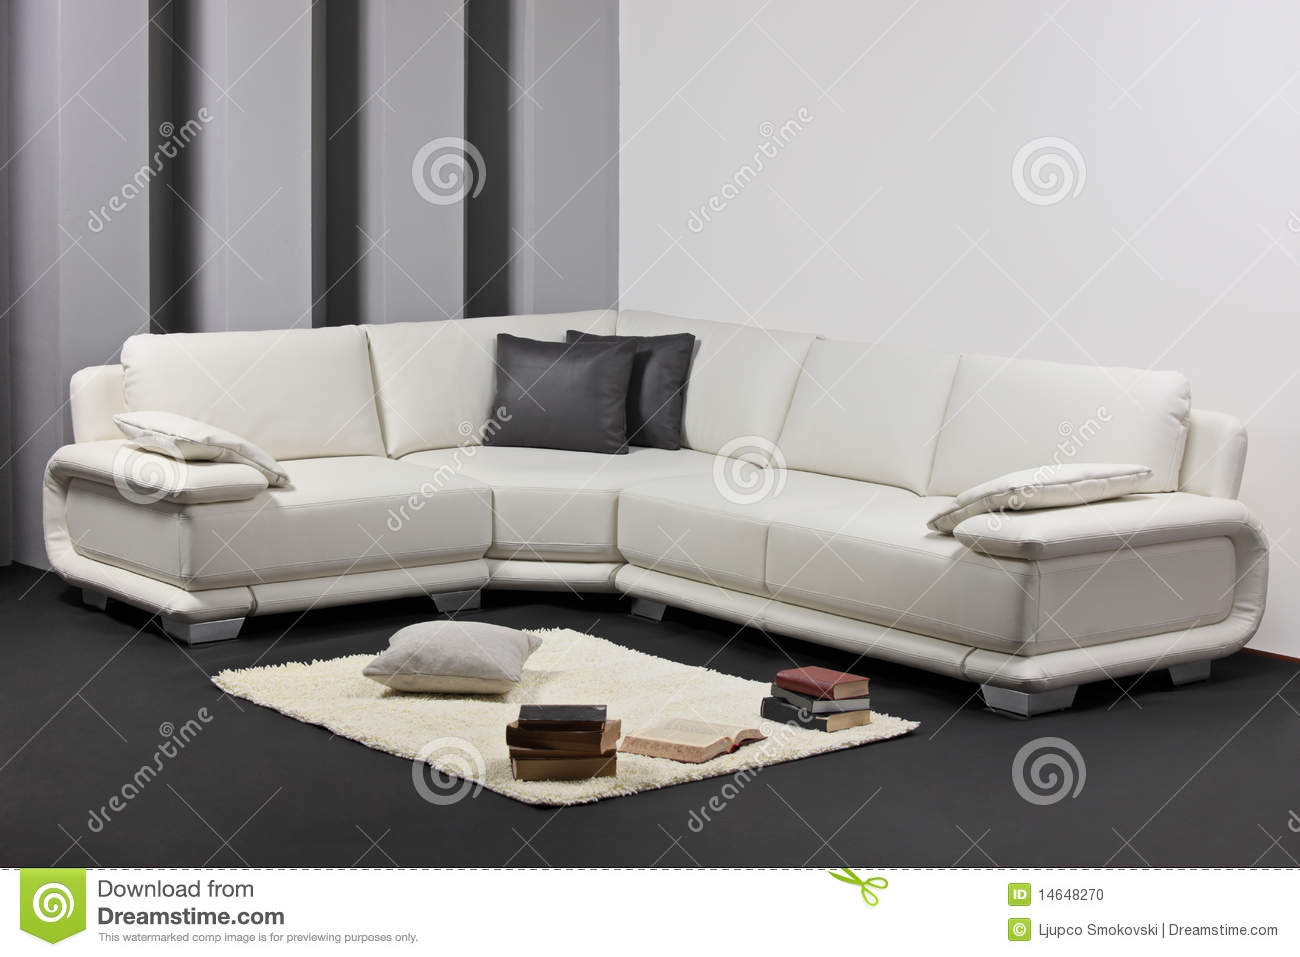 A Modern Minimalist Living Room With Furniture Stock Photo